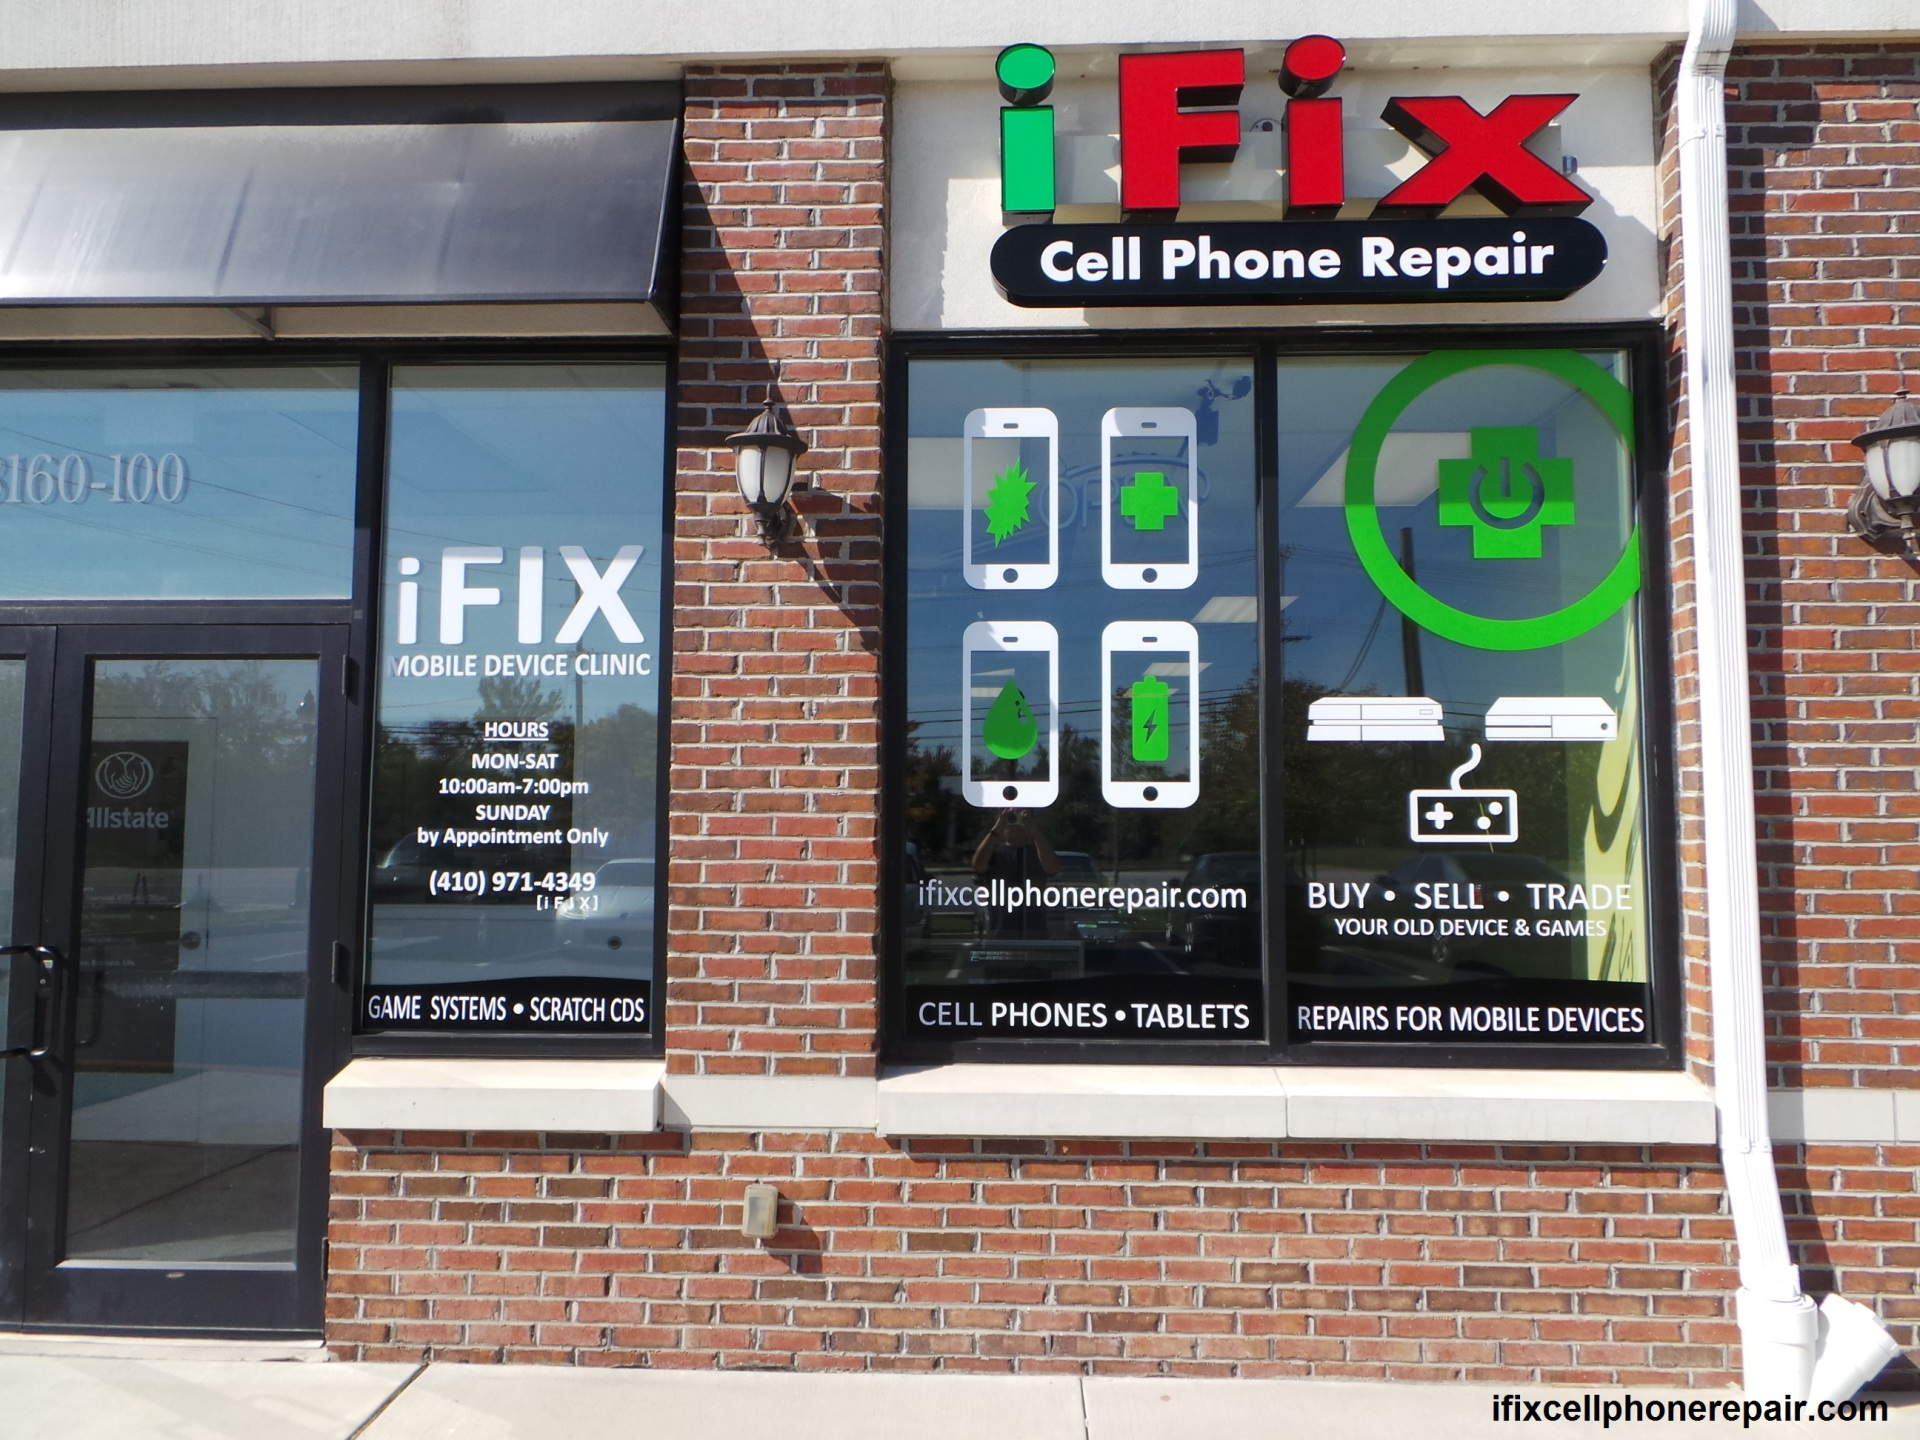 iphone repair,cell phone repair,tablet repair,game console repair,repair while you wait